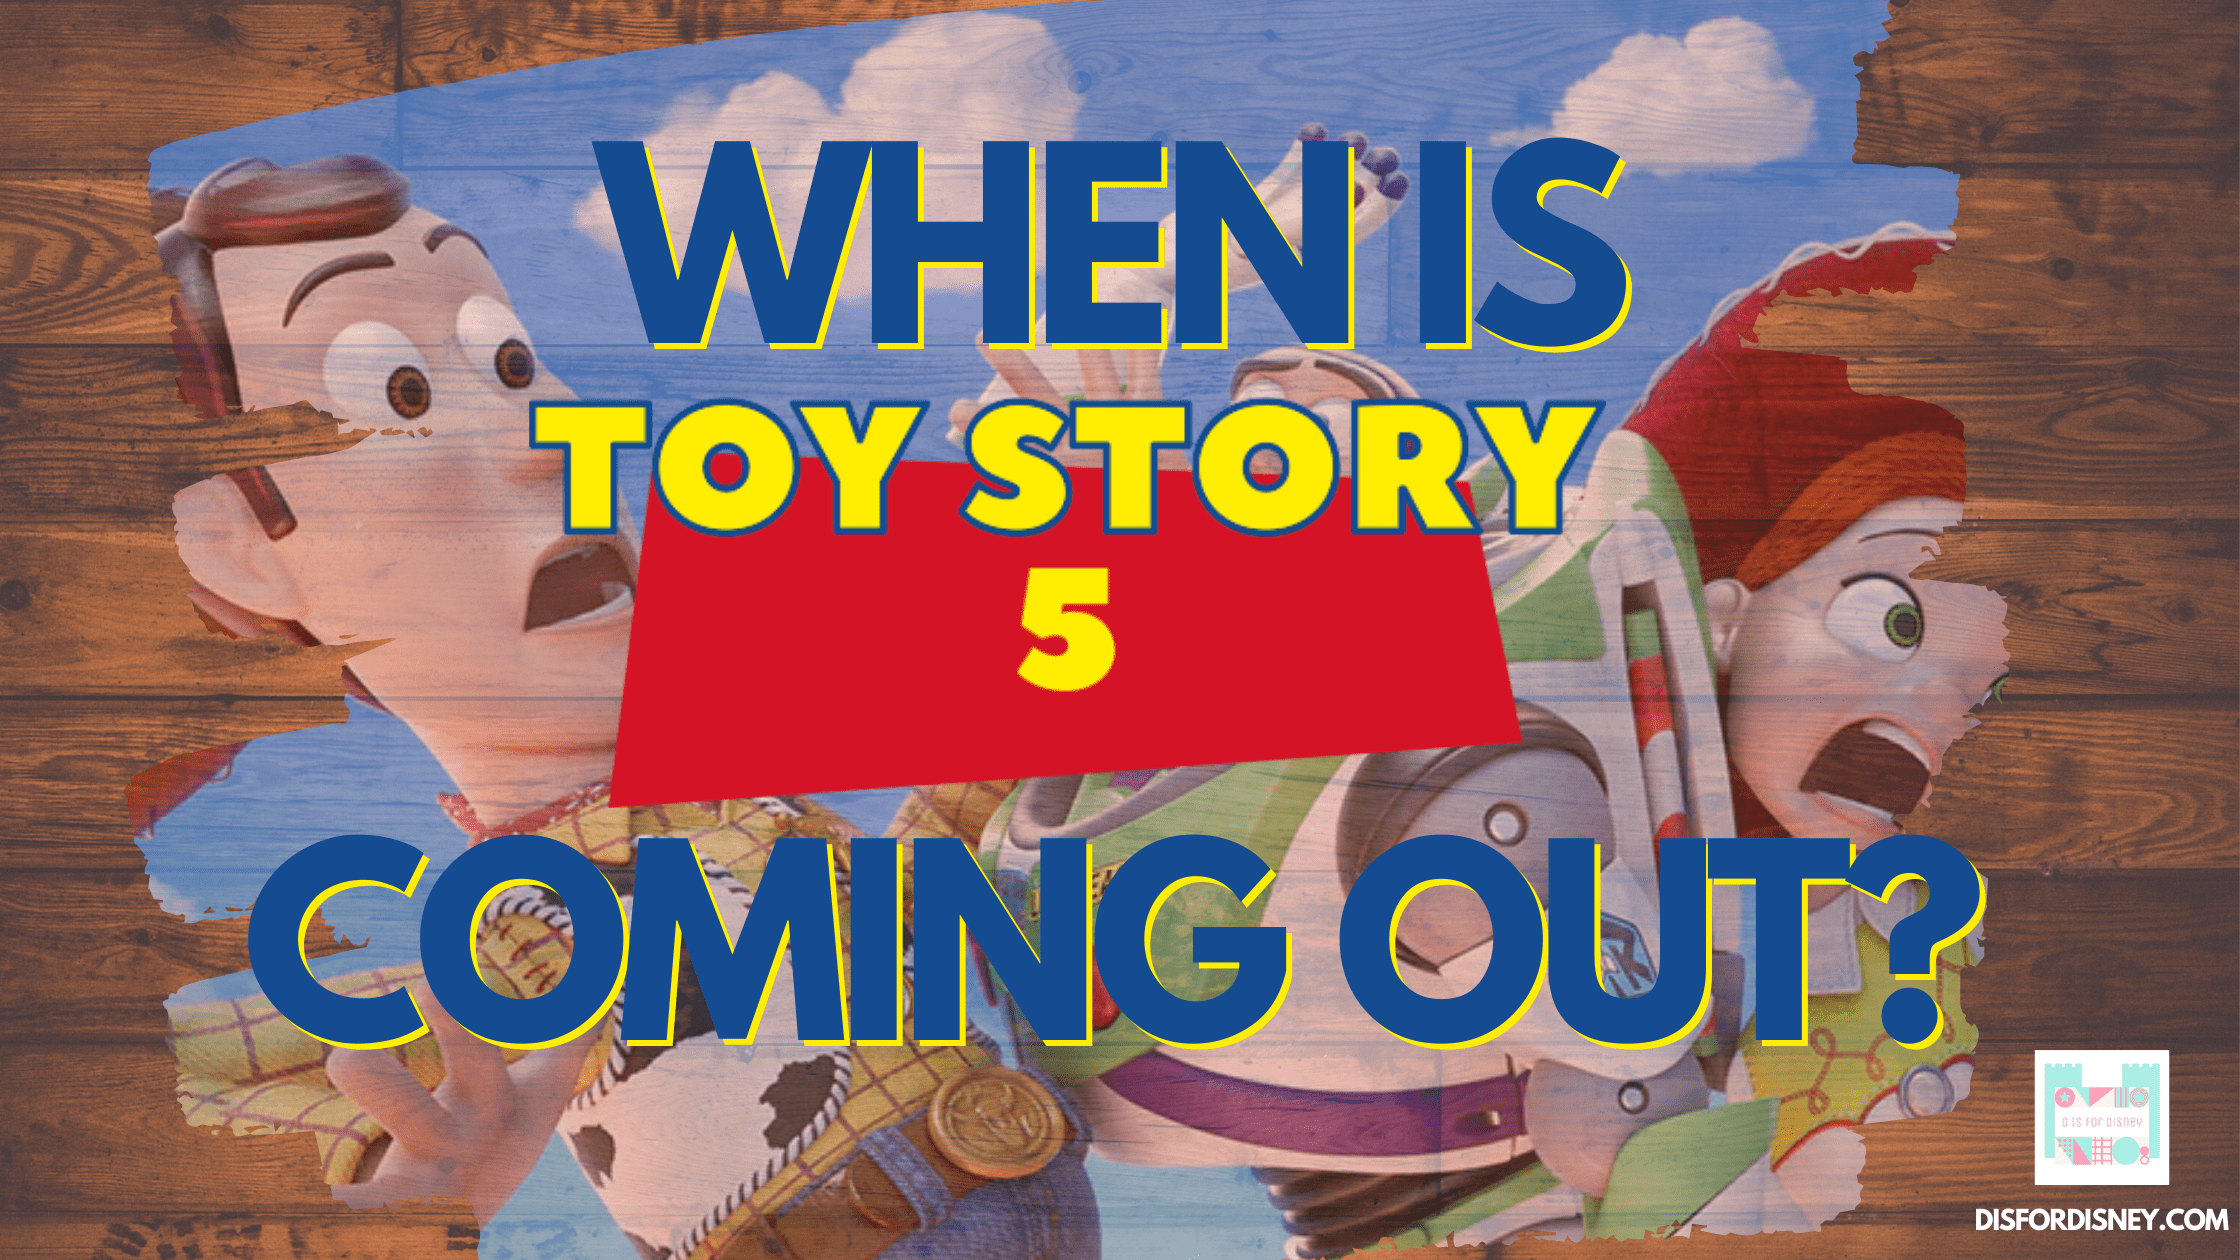 When-Is-Toy-Story-5-Coming-Out-Banner